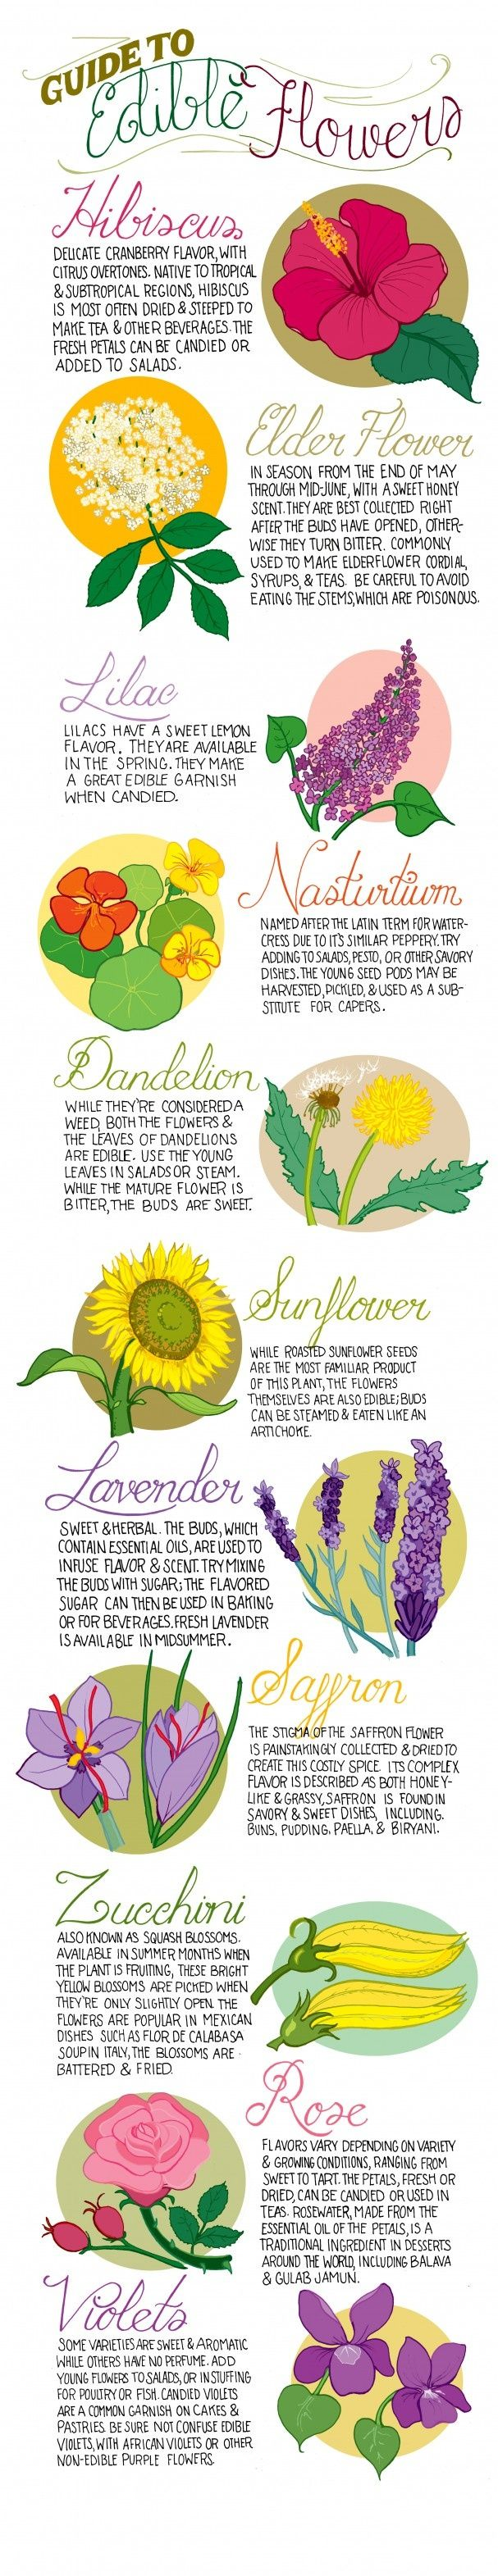 Pretty up your meals with these edible flowers. http://www.trakgene.com/